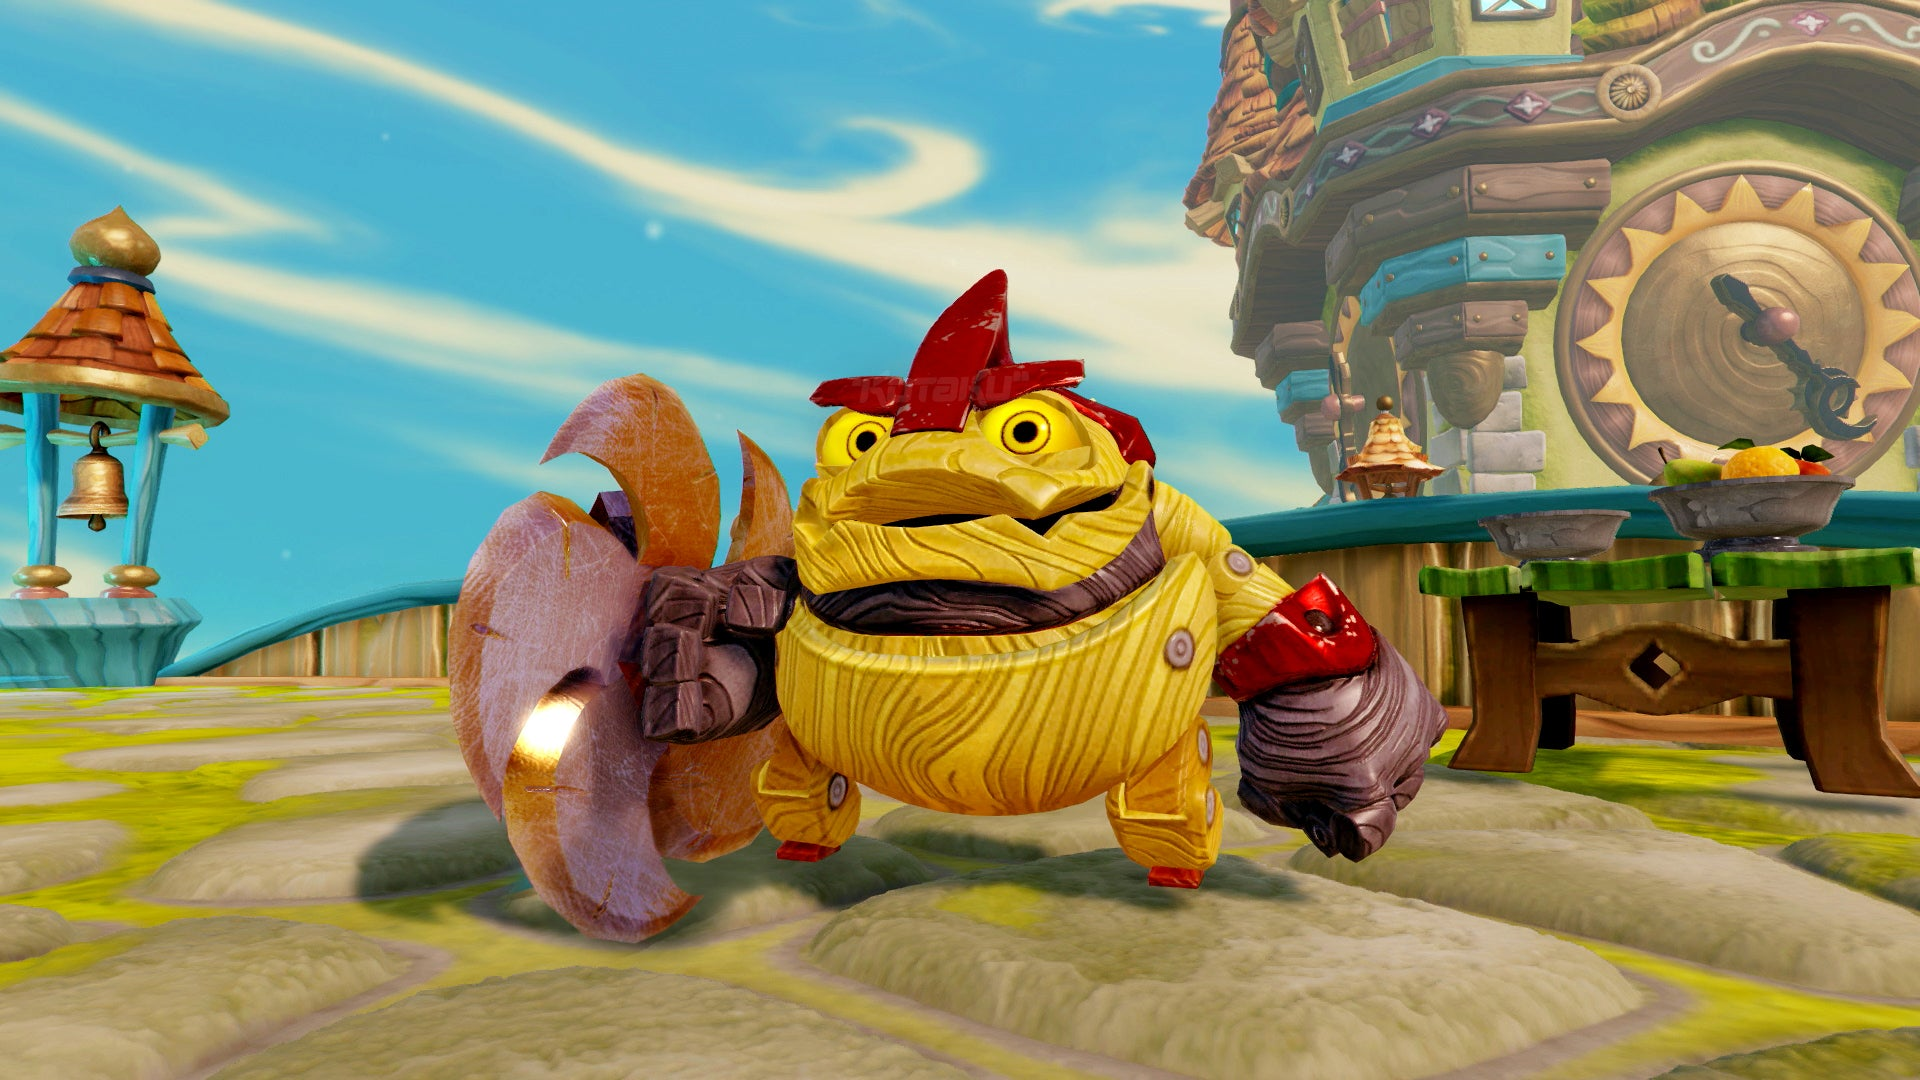 This Year's E3 Exclusive Skylander Isn't A Skylander At All